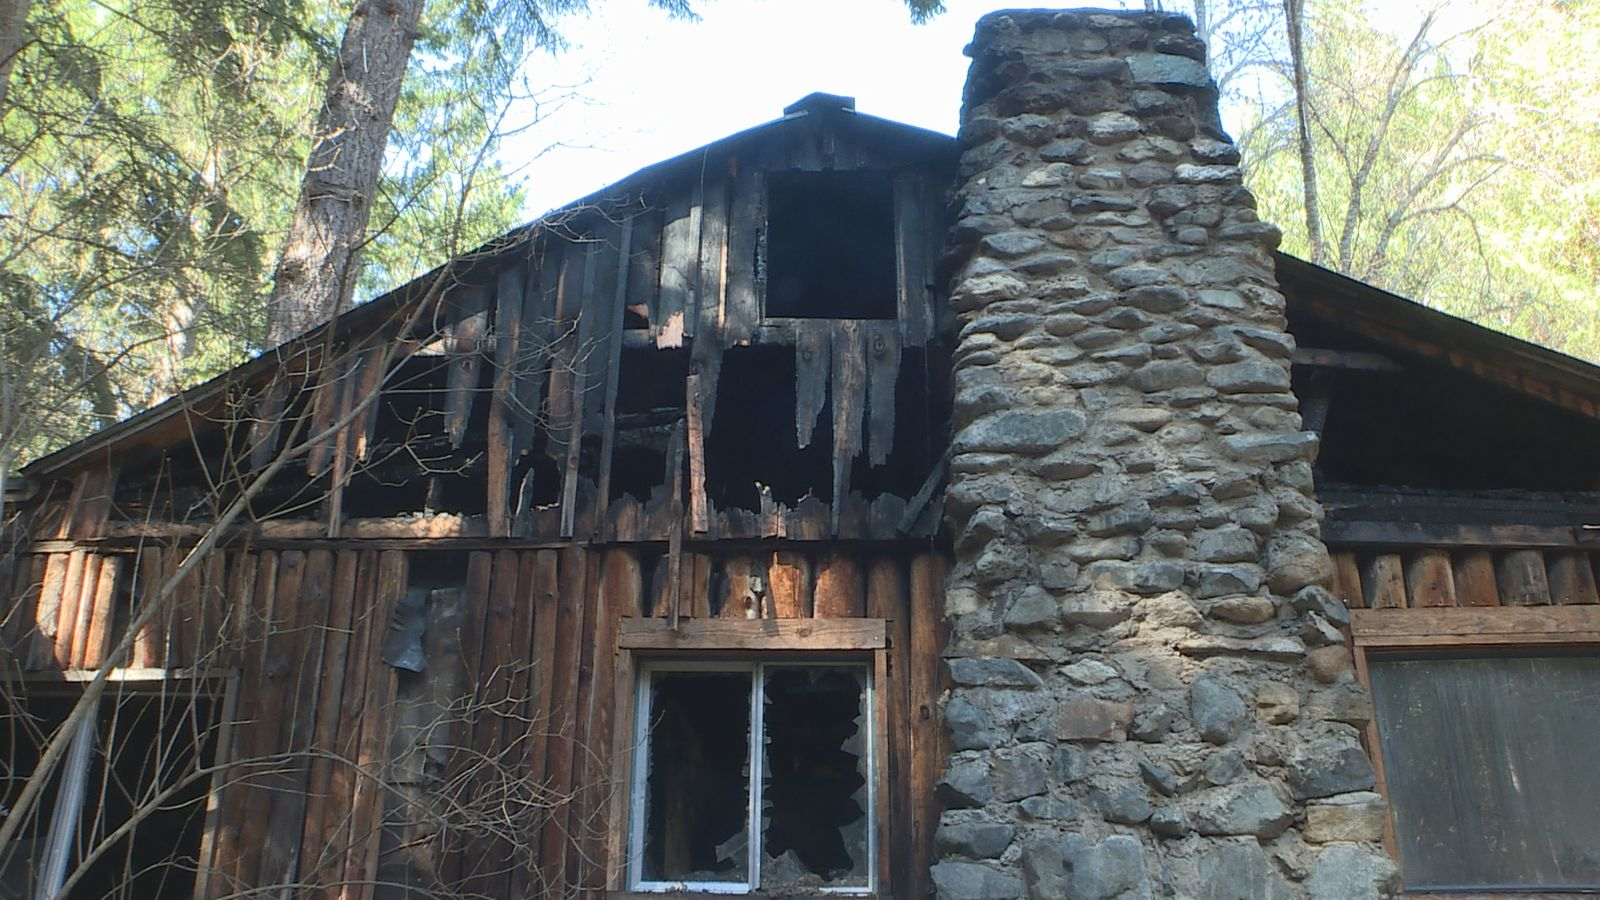 The house in Williams is said to be a total loss after a chimney fire broke out. (Sammy Shaktah/News 10){ }{ }